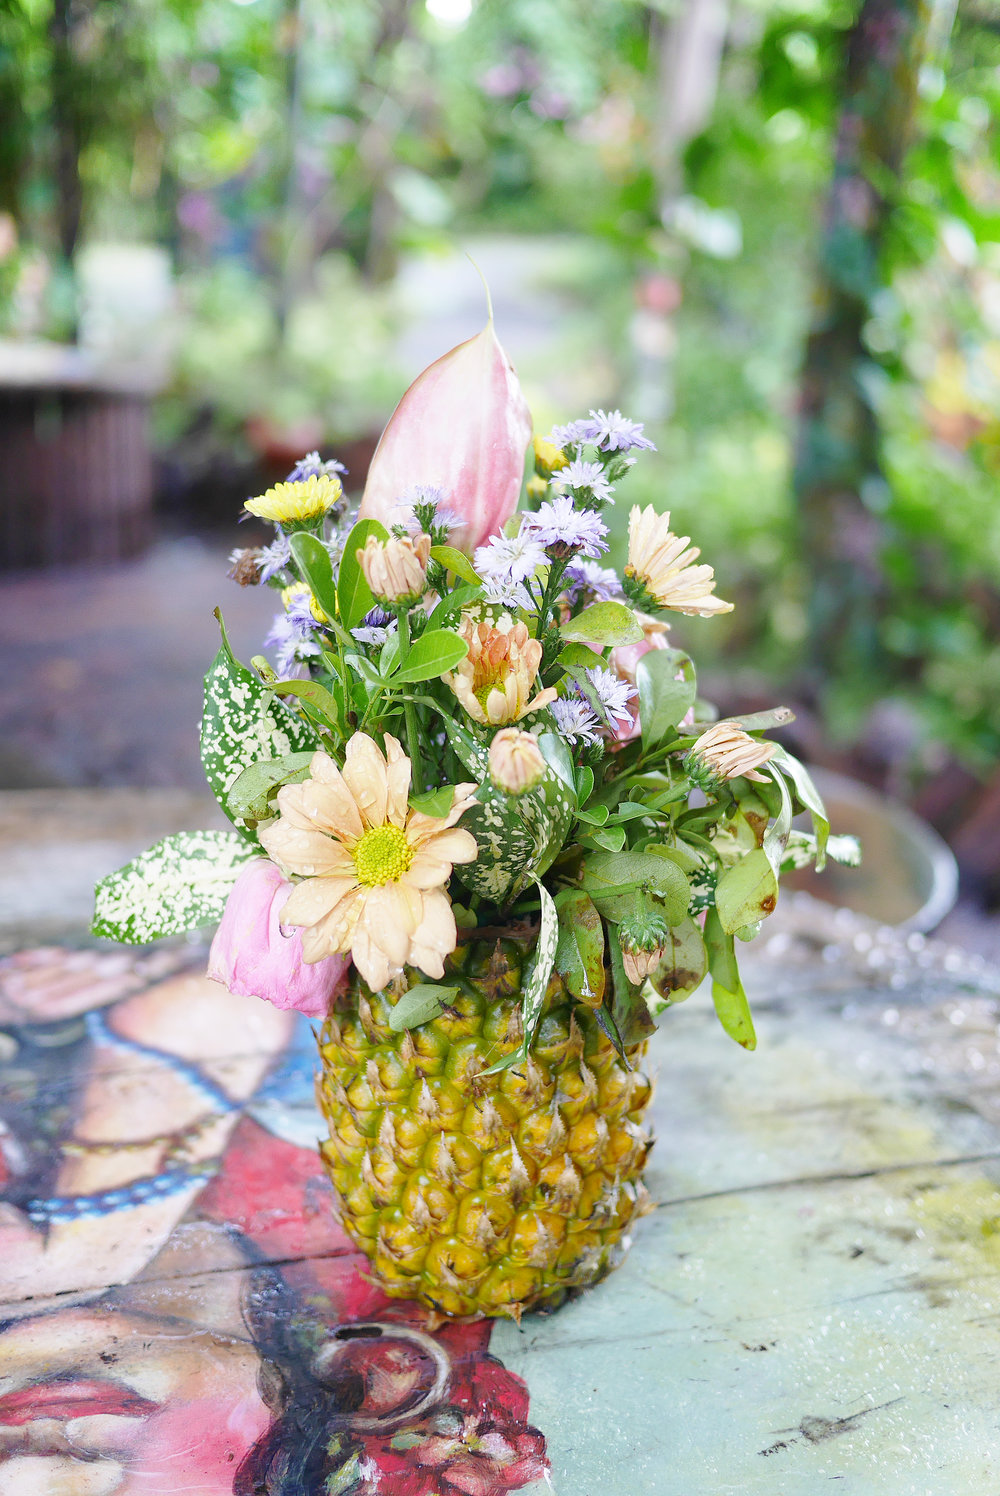 Adorable pineapple with fresh flowers on top for the table centerpiece